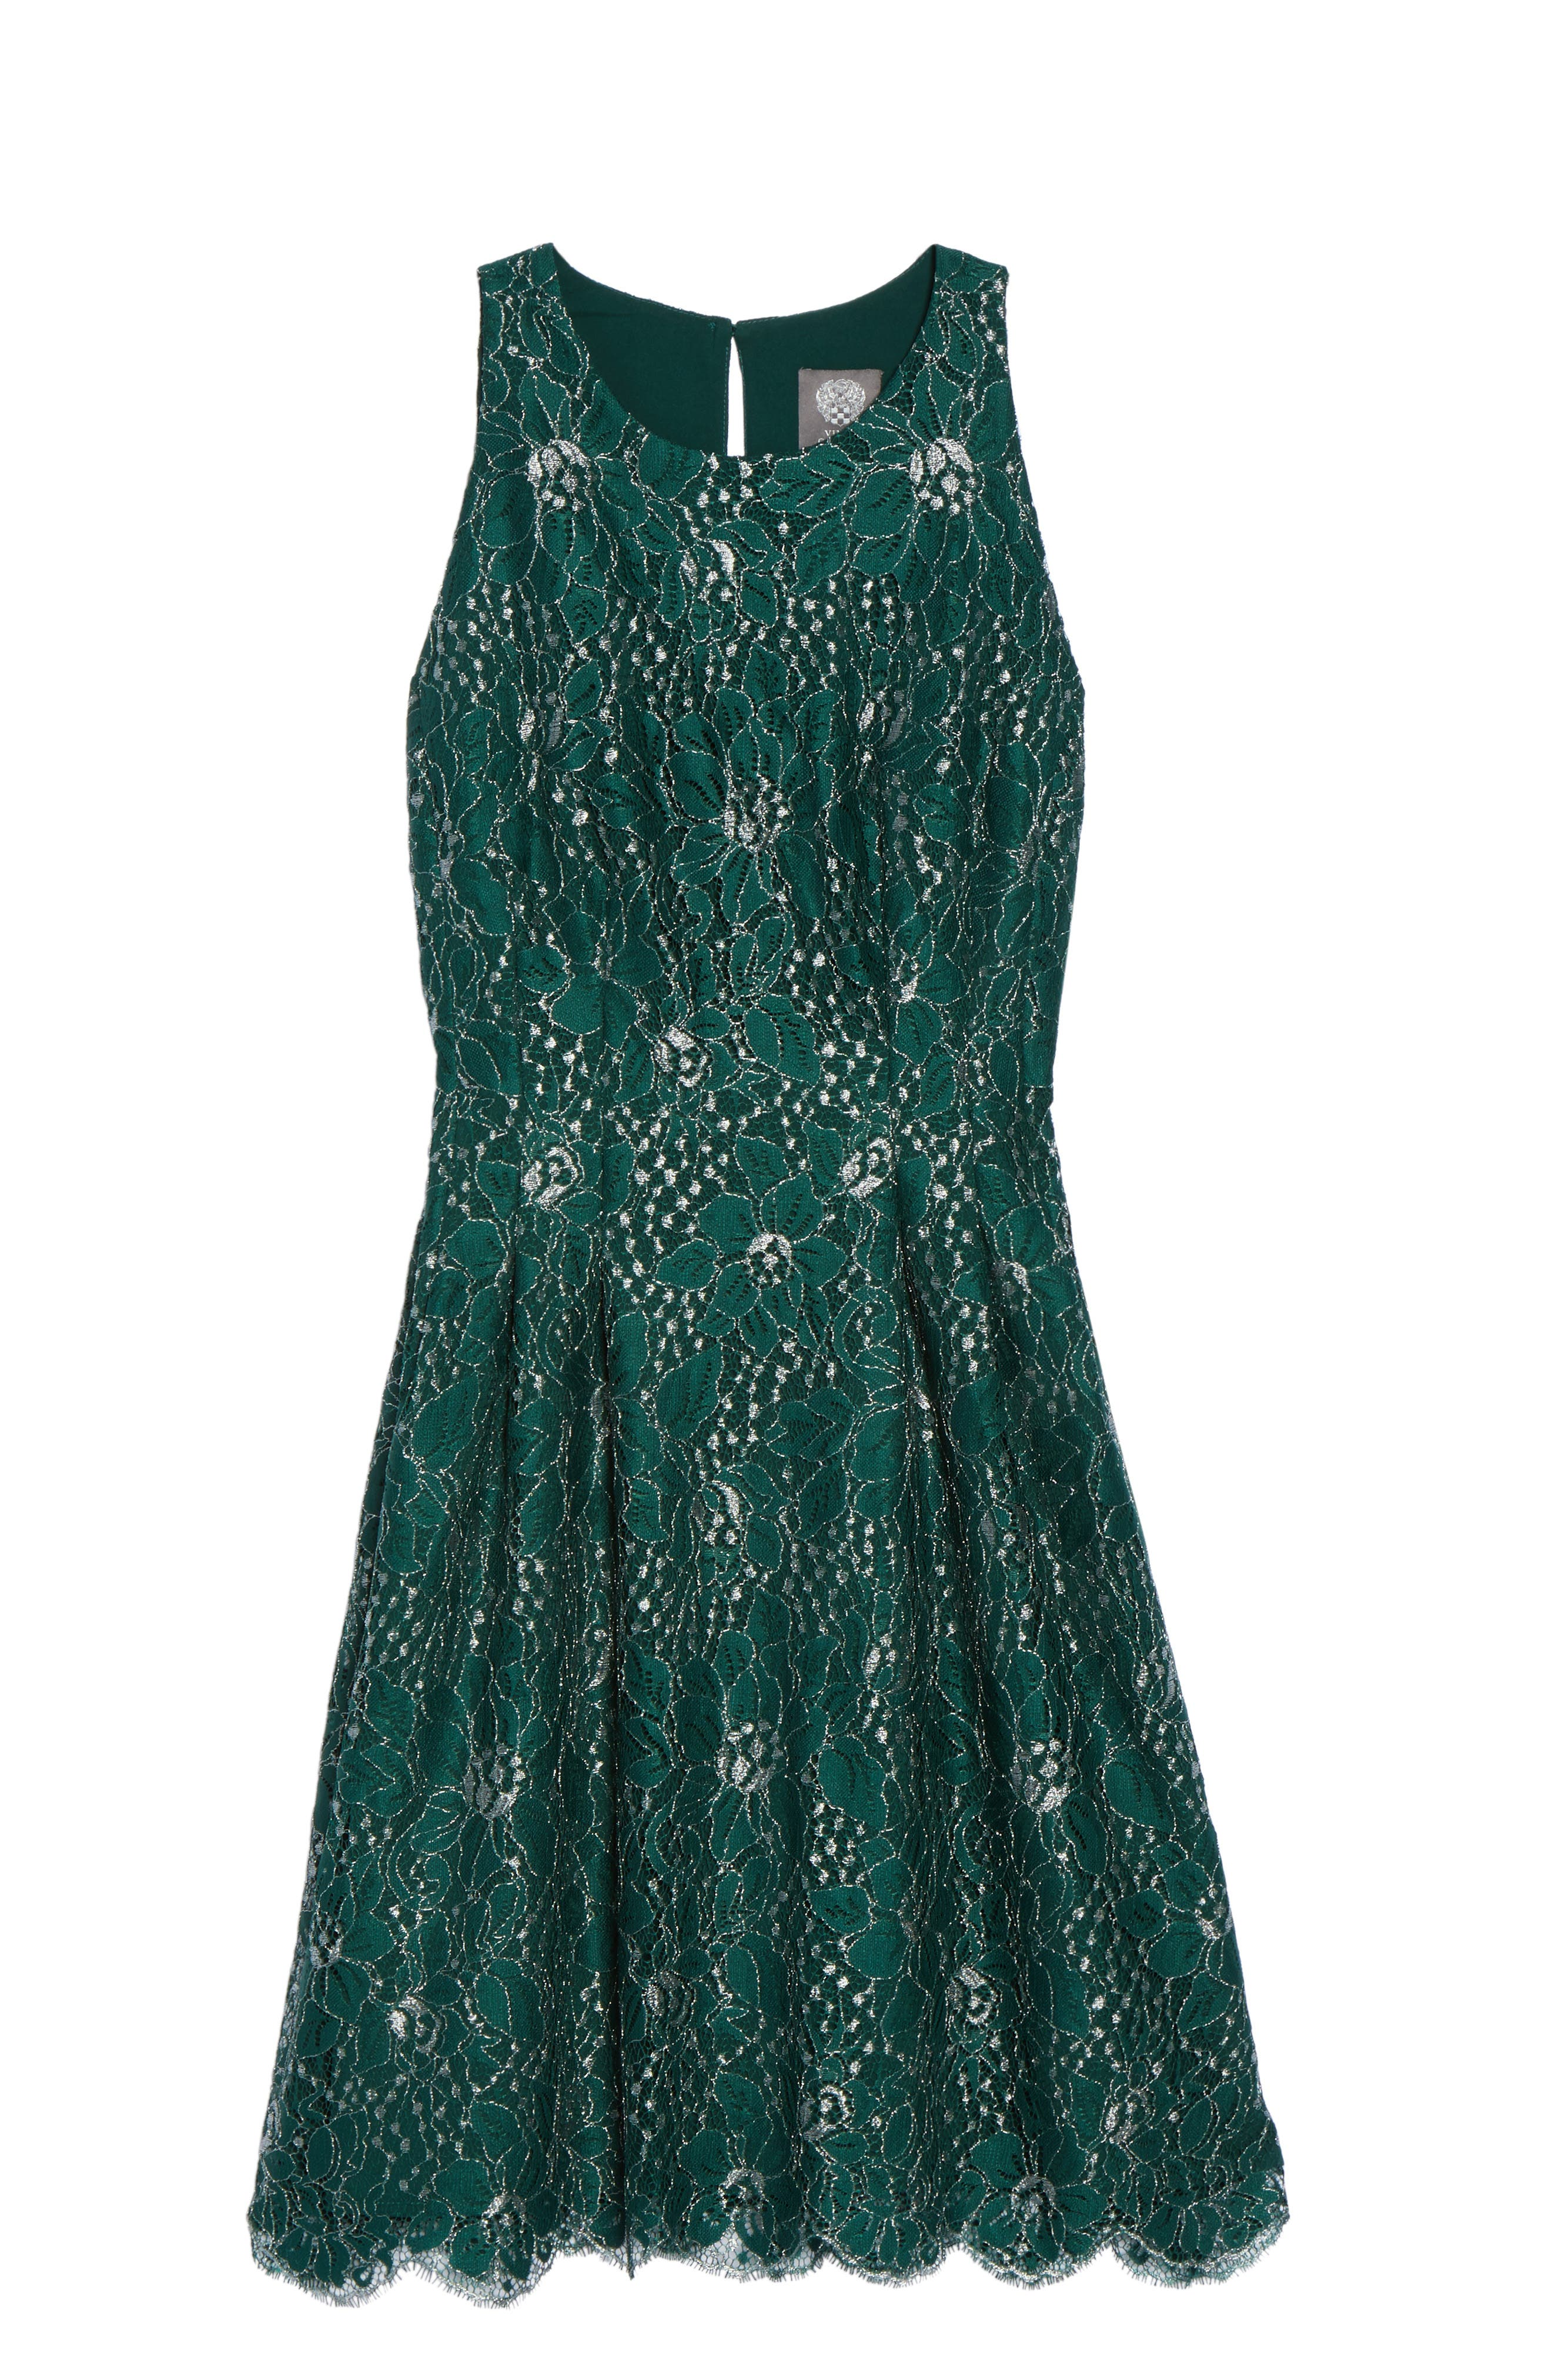 Metallic Lace Fit & Flare Dress,                             Alternate thumbnail 6, color,                             310